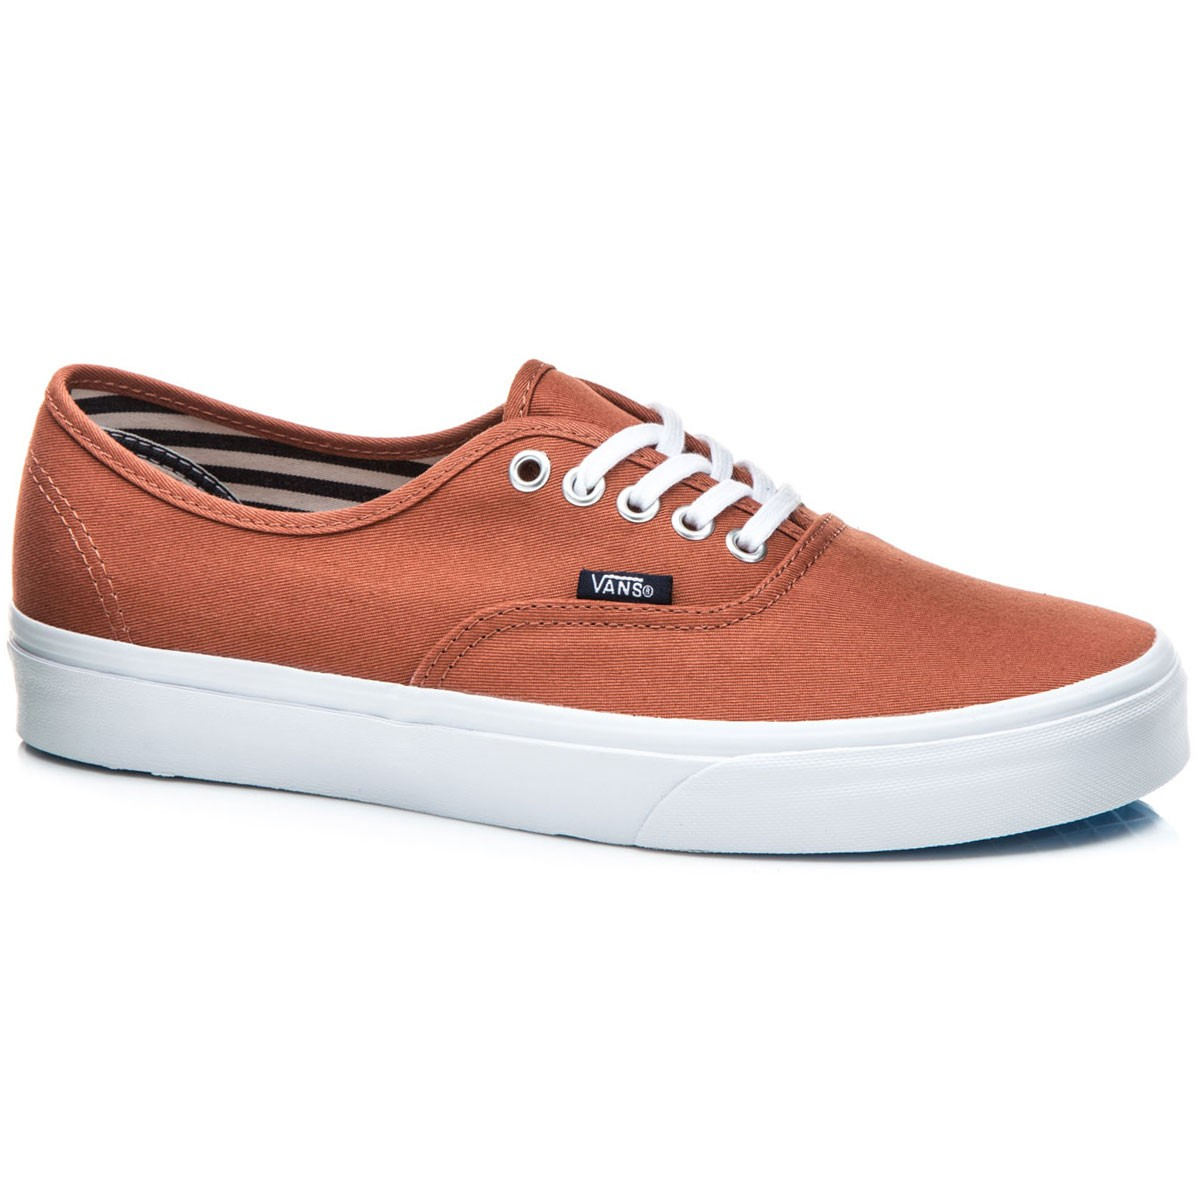 Vans Original Authentic Shoes - Deck Club/Auburn